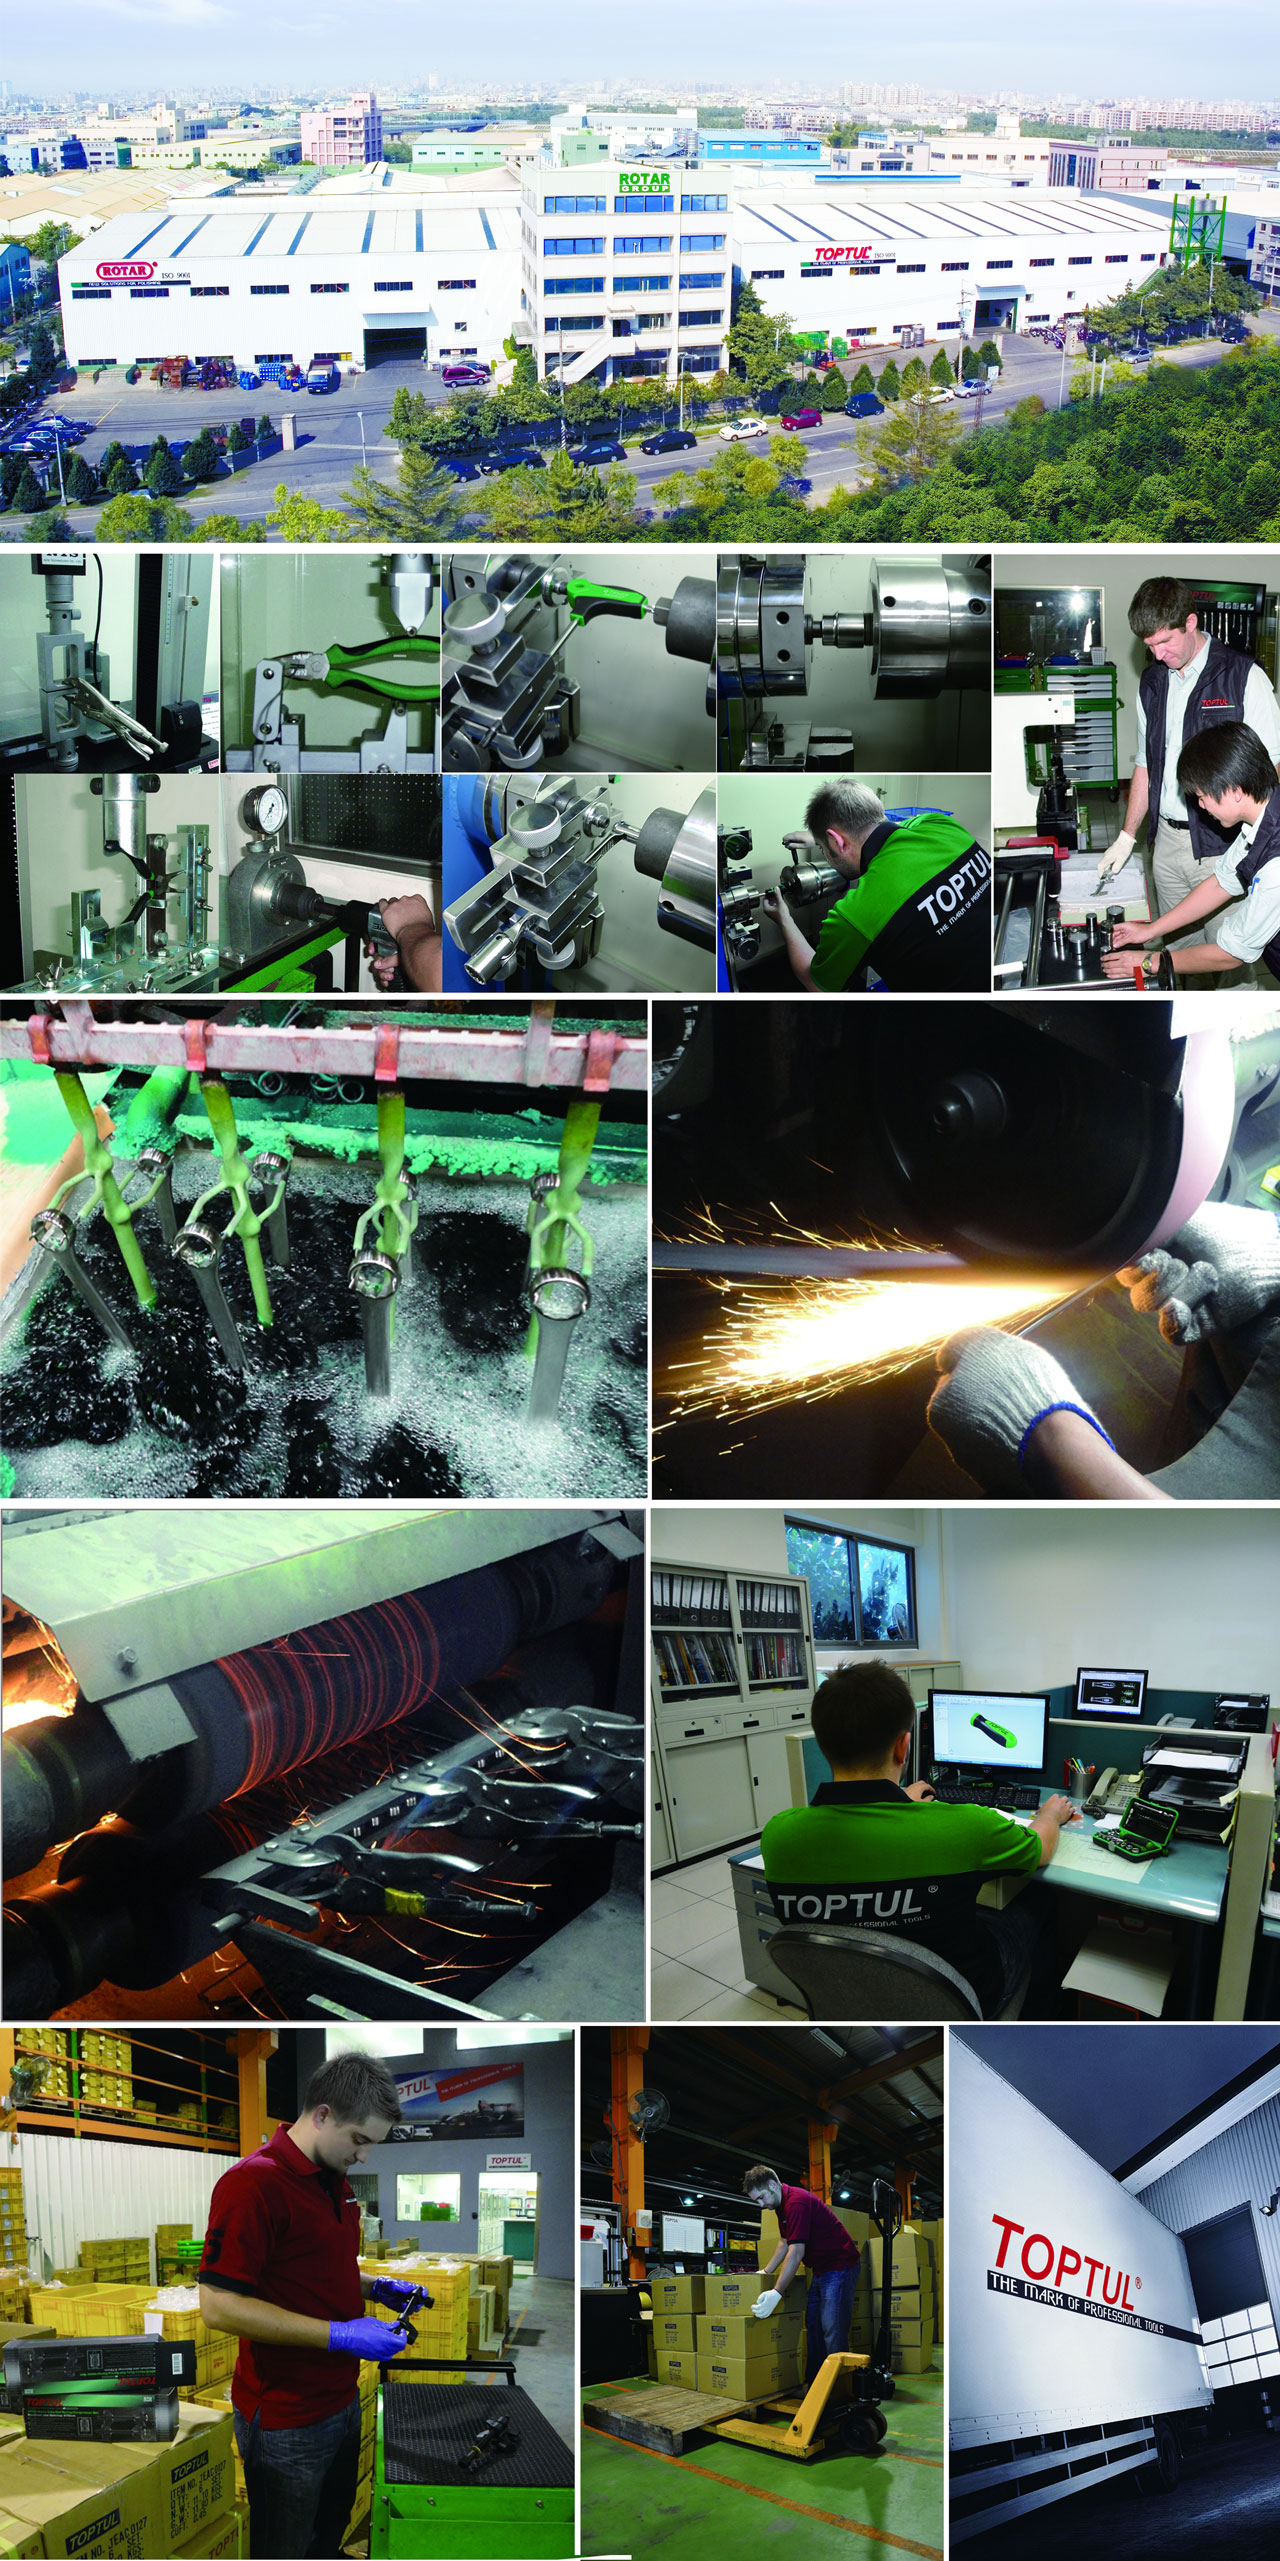 toptul-factory-process.jpg